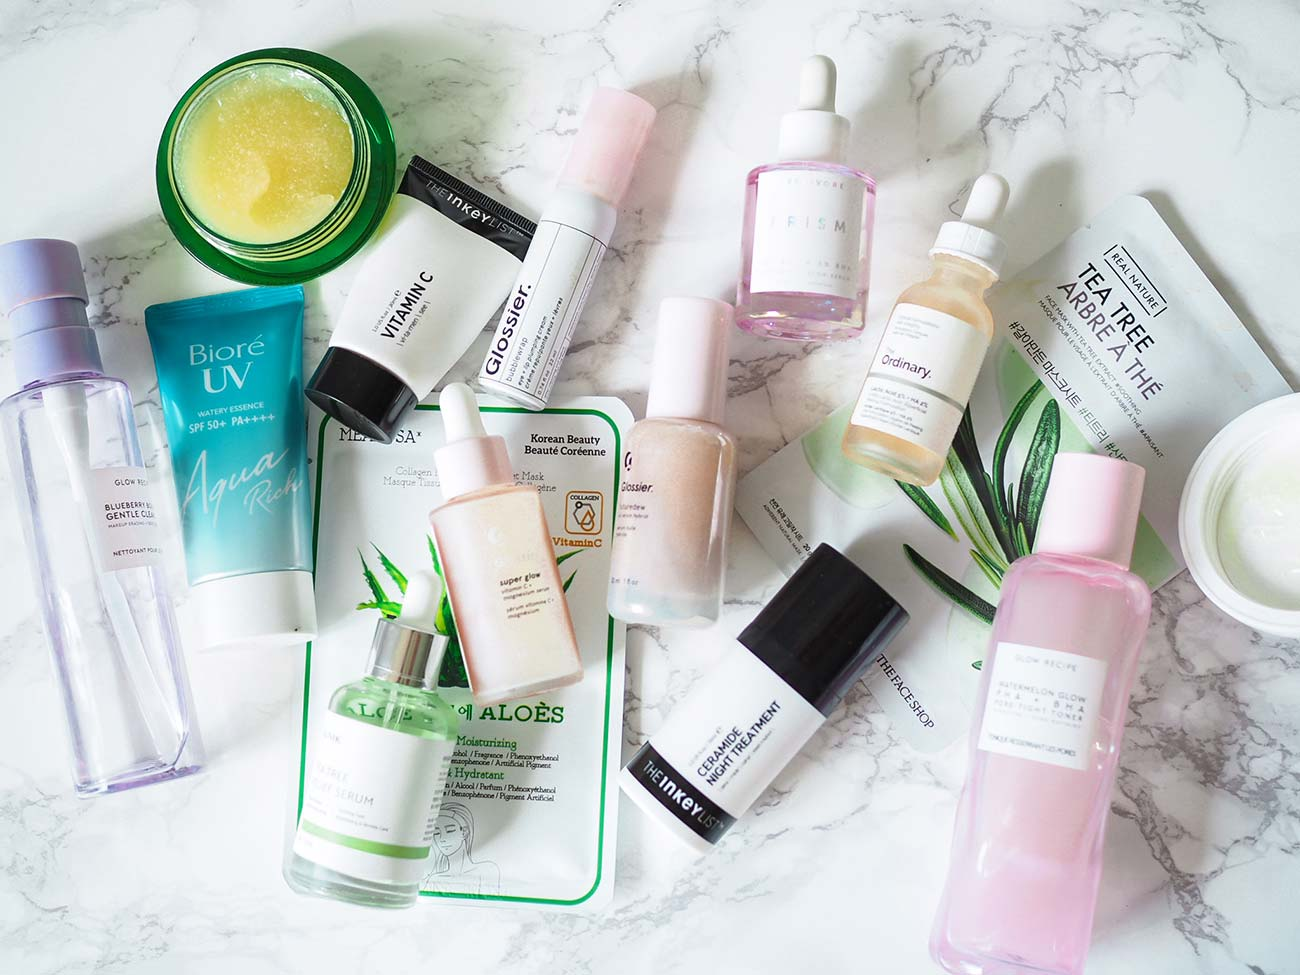 skincare mistakes - over-exfoliating, over-cleansing